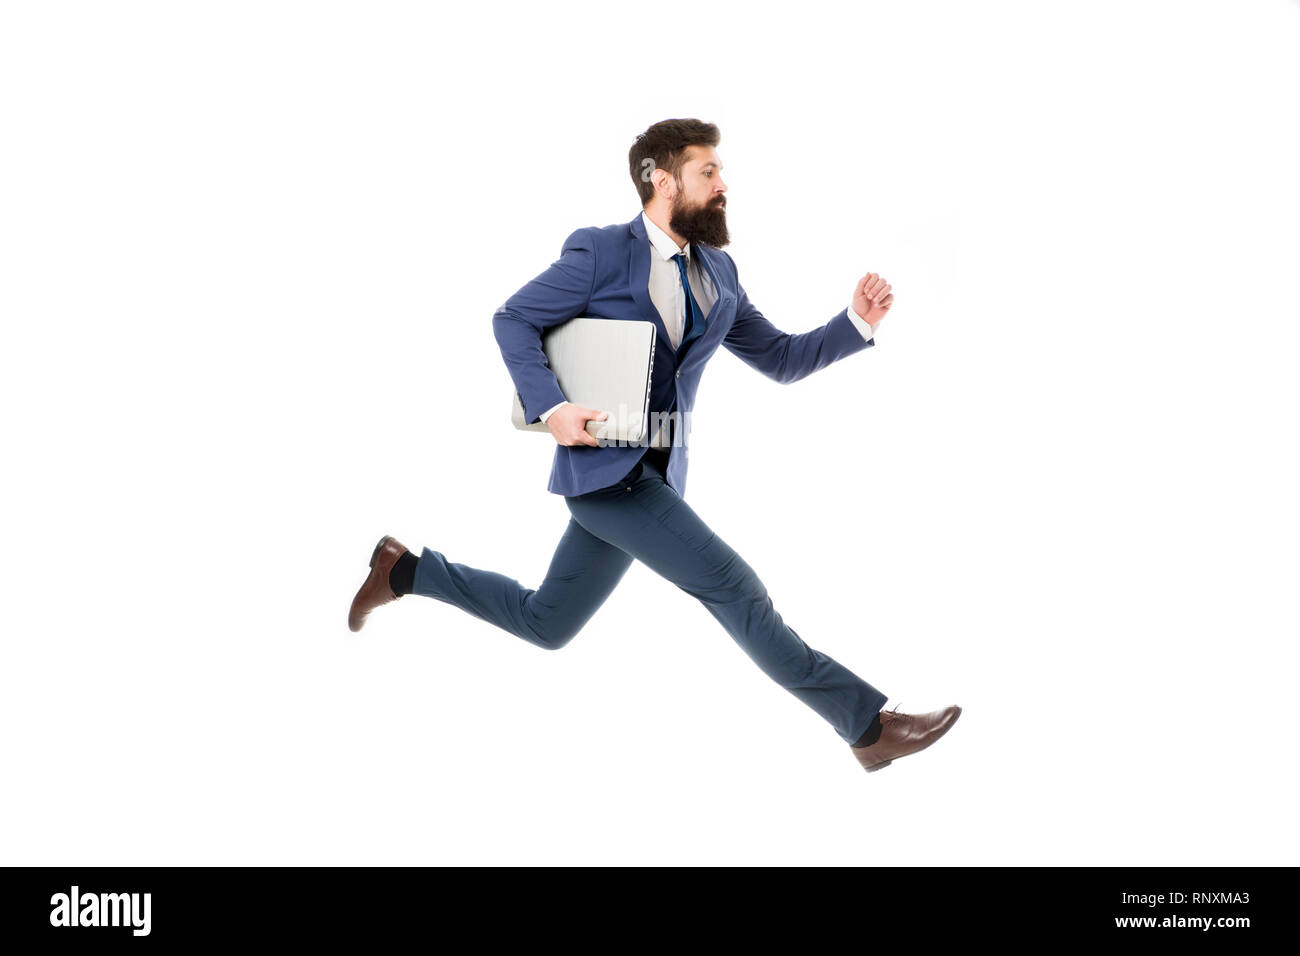 Towards success. Inspiring innovations. Businessman inspired guy feel powerful going to change world. Man inspired hold laptop while jump. Follow your dream. Keep moving. Inspired for start up. - Stock Image